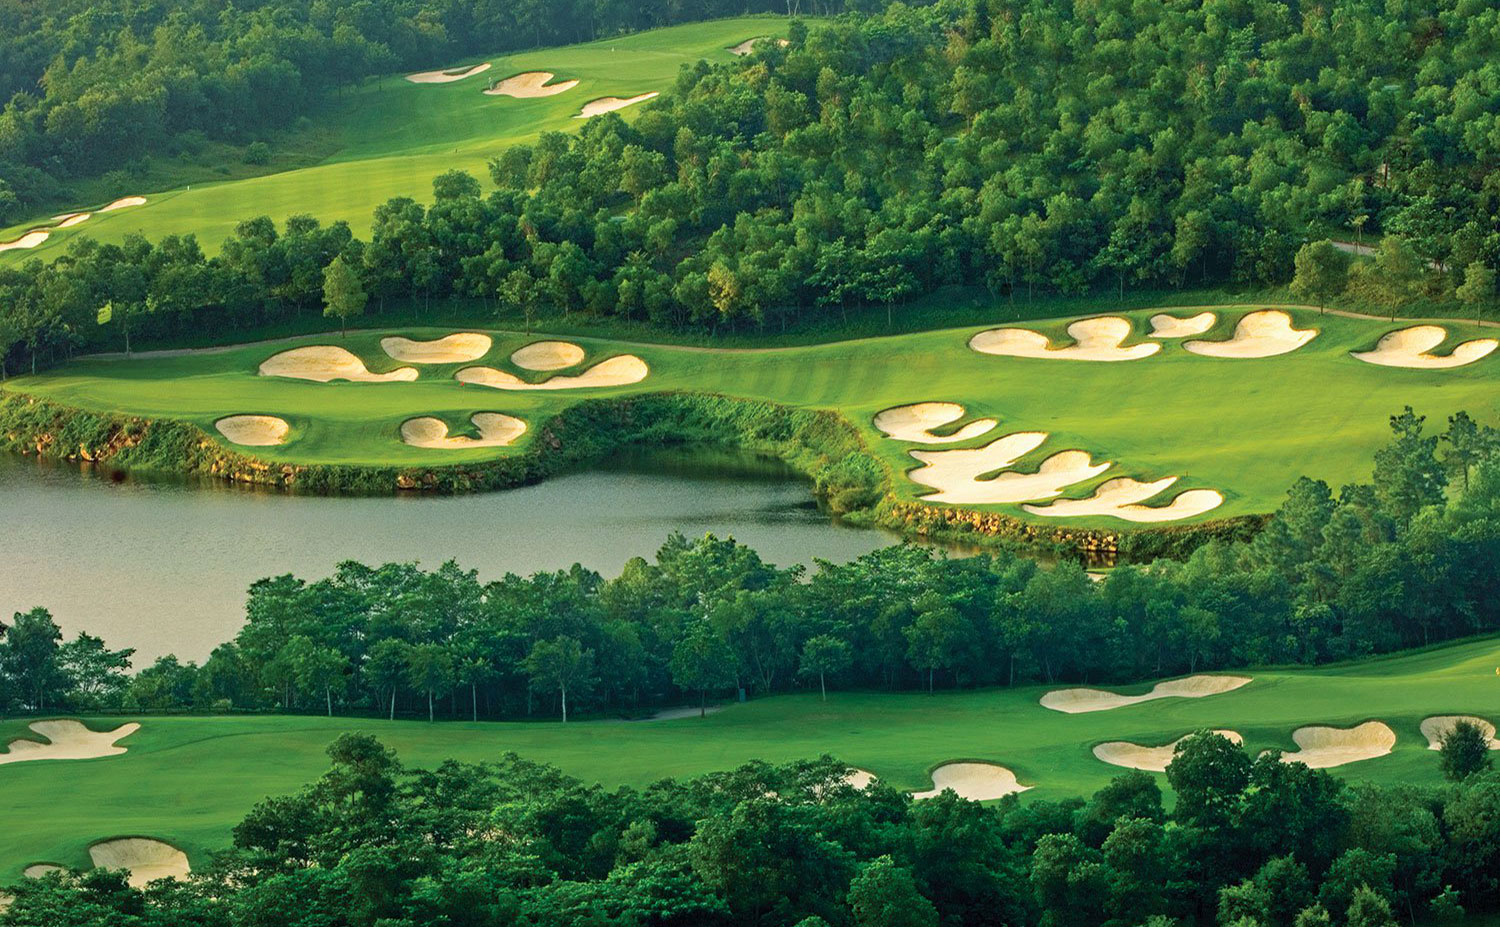 Olazabal-Golf-Course-Mission-Hills-Dongguan